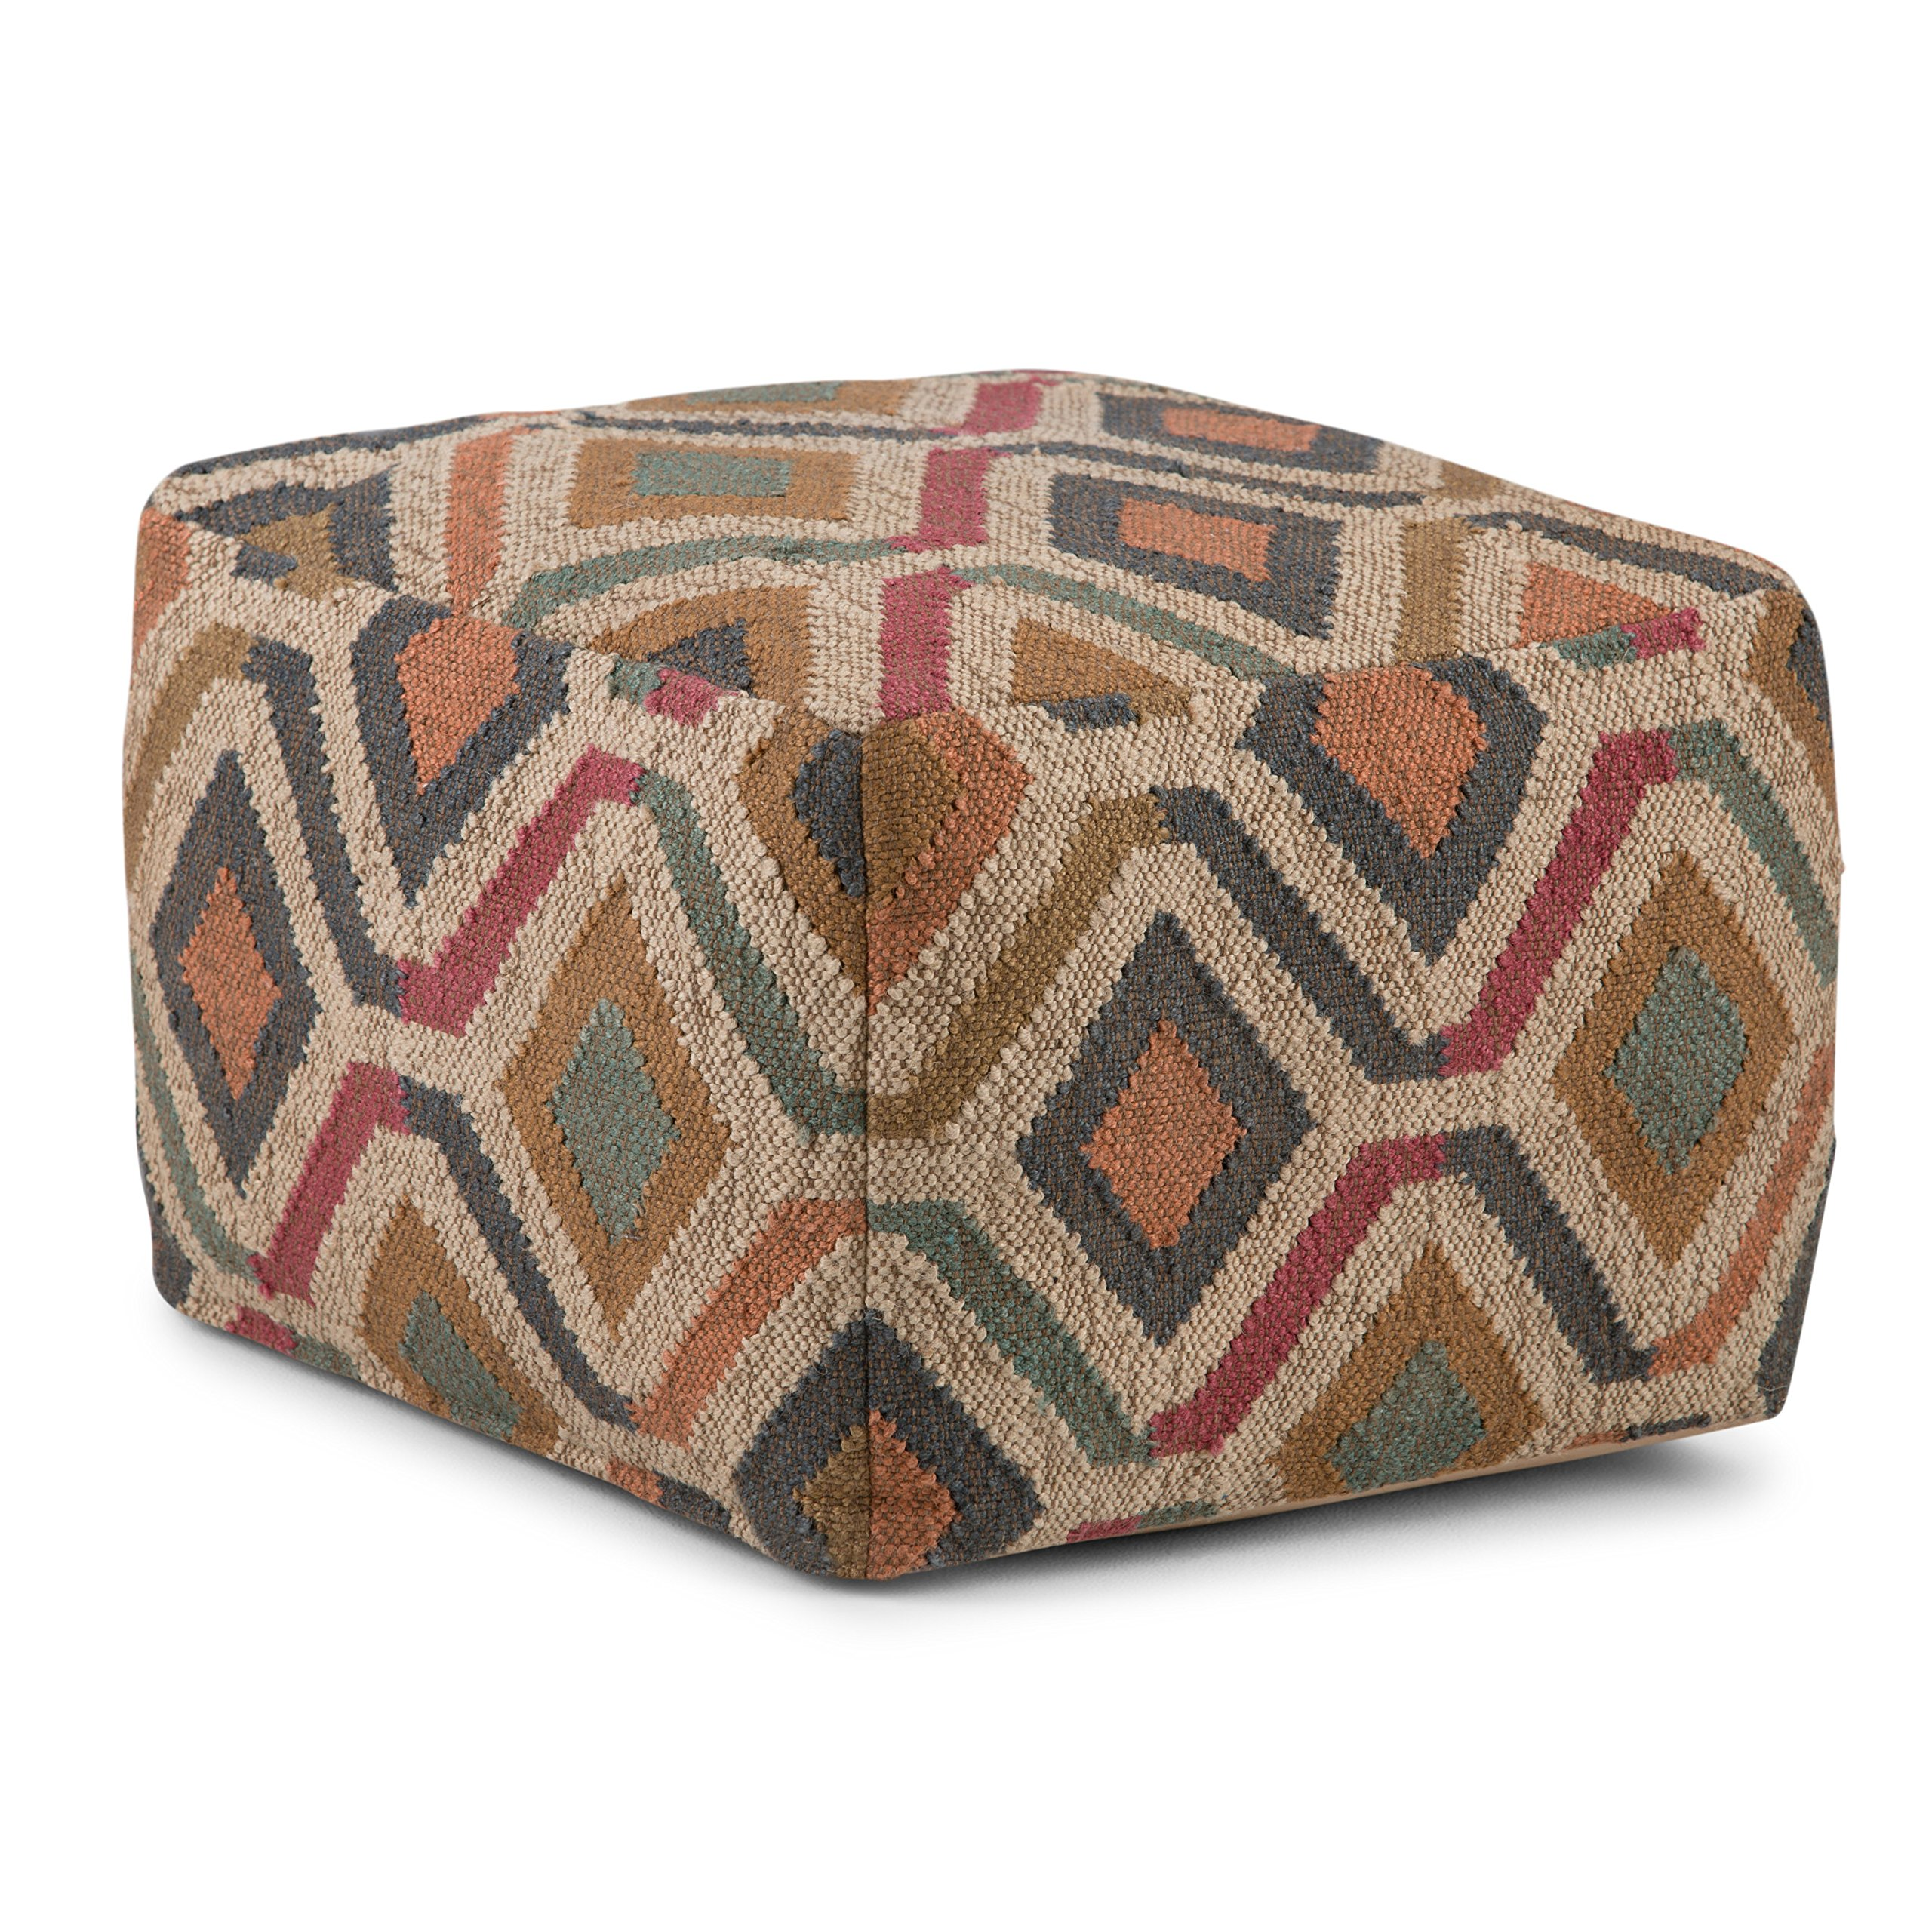 Simpli Home AXCPF-12 Johanna Transitional Square Pouf in Kilim Patterned Jute, Fully Assembled by Simpli Home